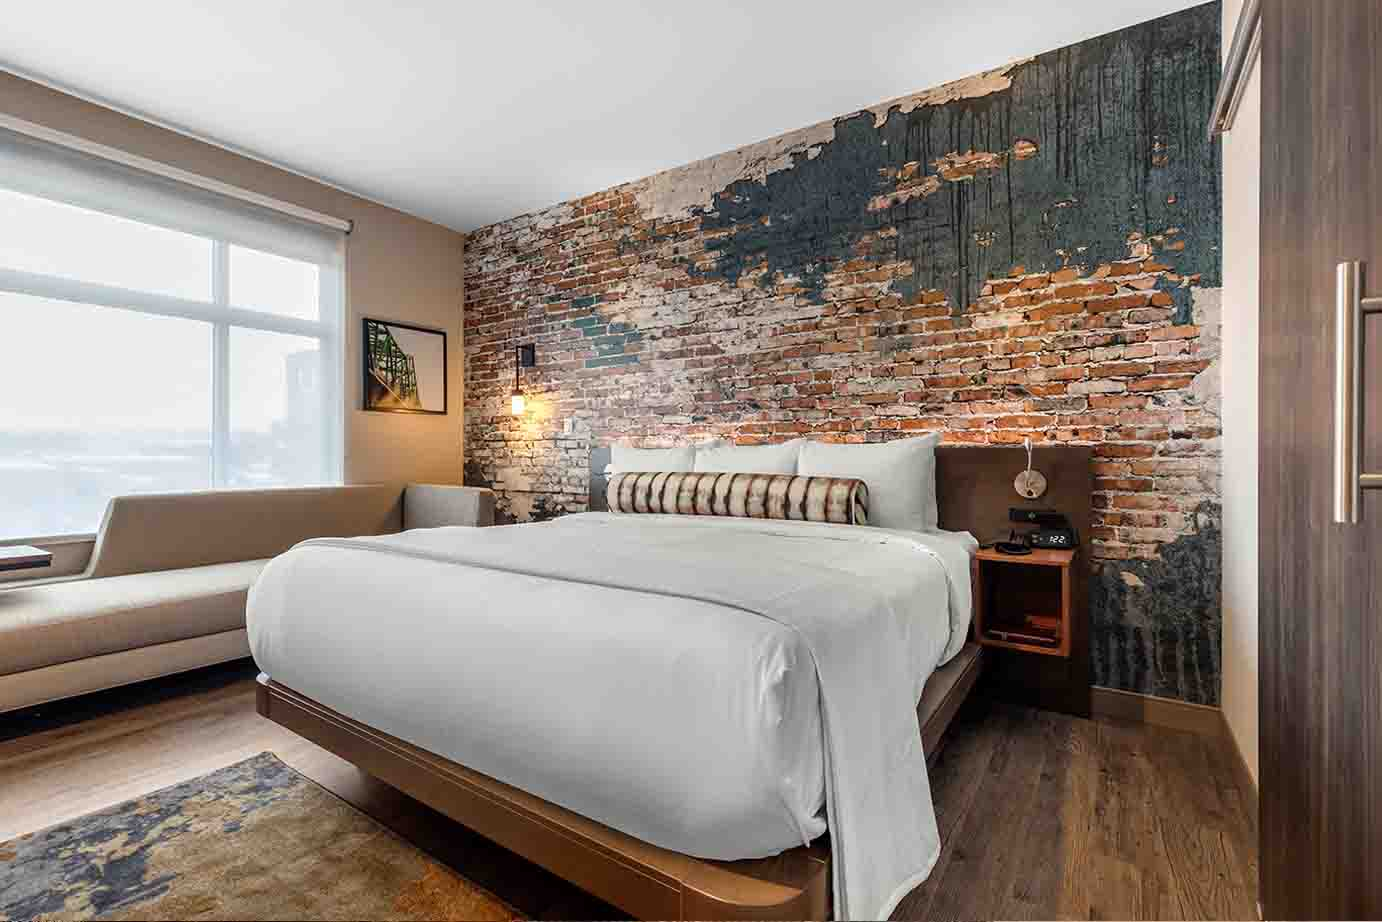 Cambria Hotel Room with Exposed Brick Wall